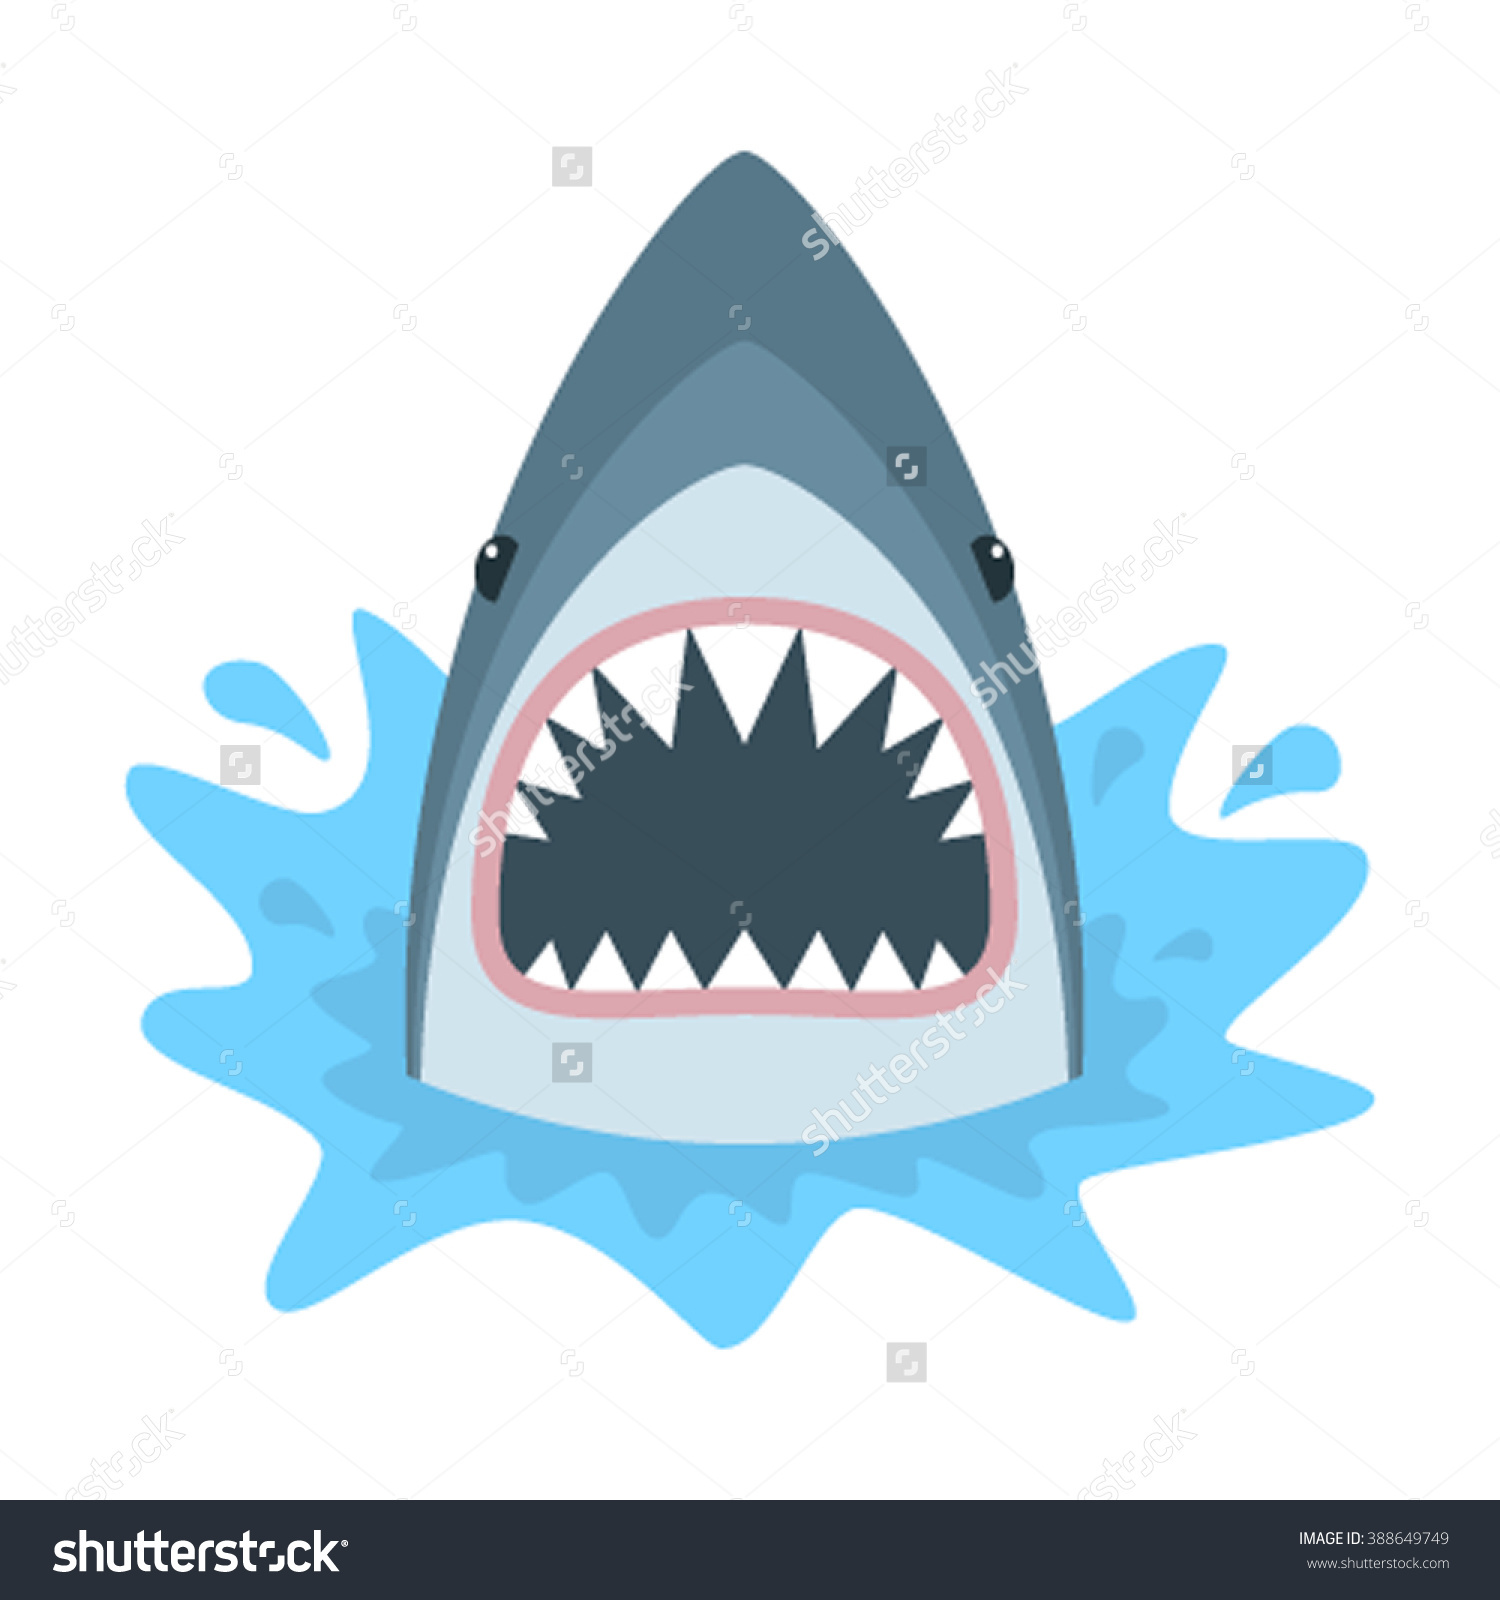 open shark mouth clipart clipground Great White Sharks Pencil Drawings Shark Drawings in Pencil